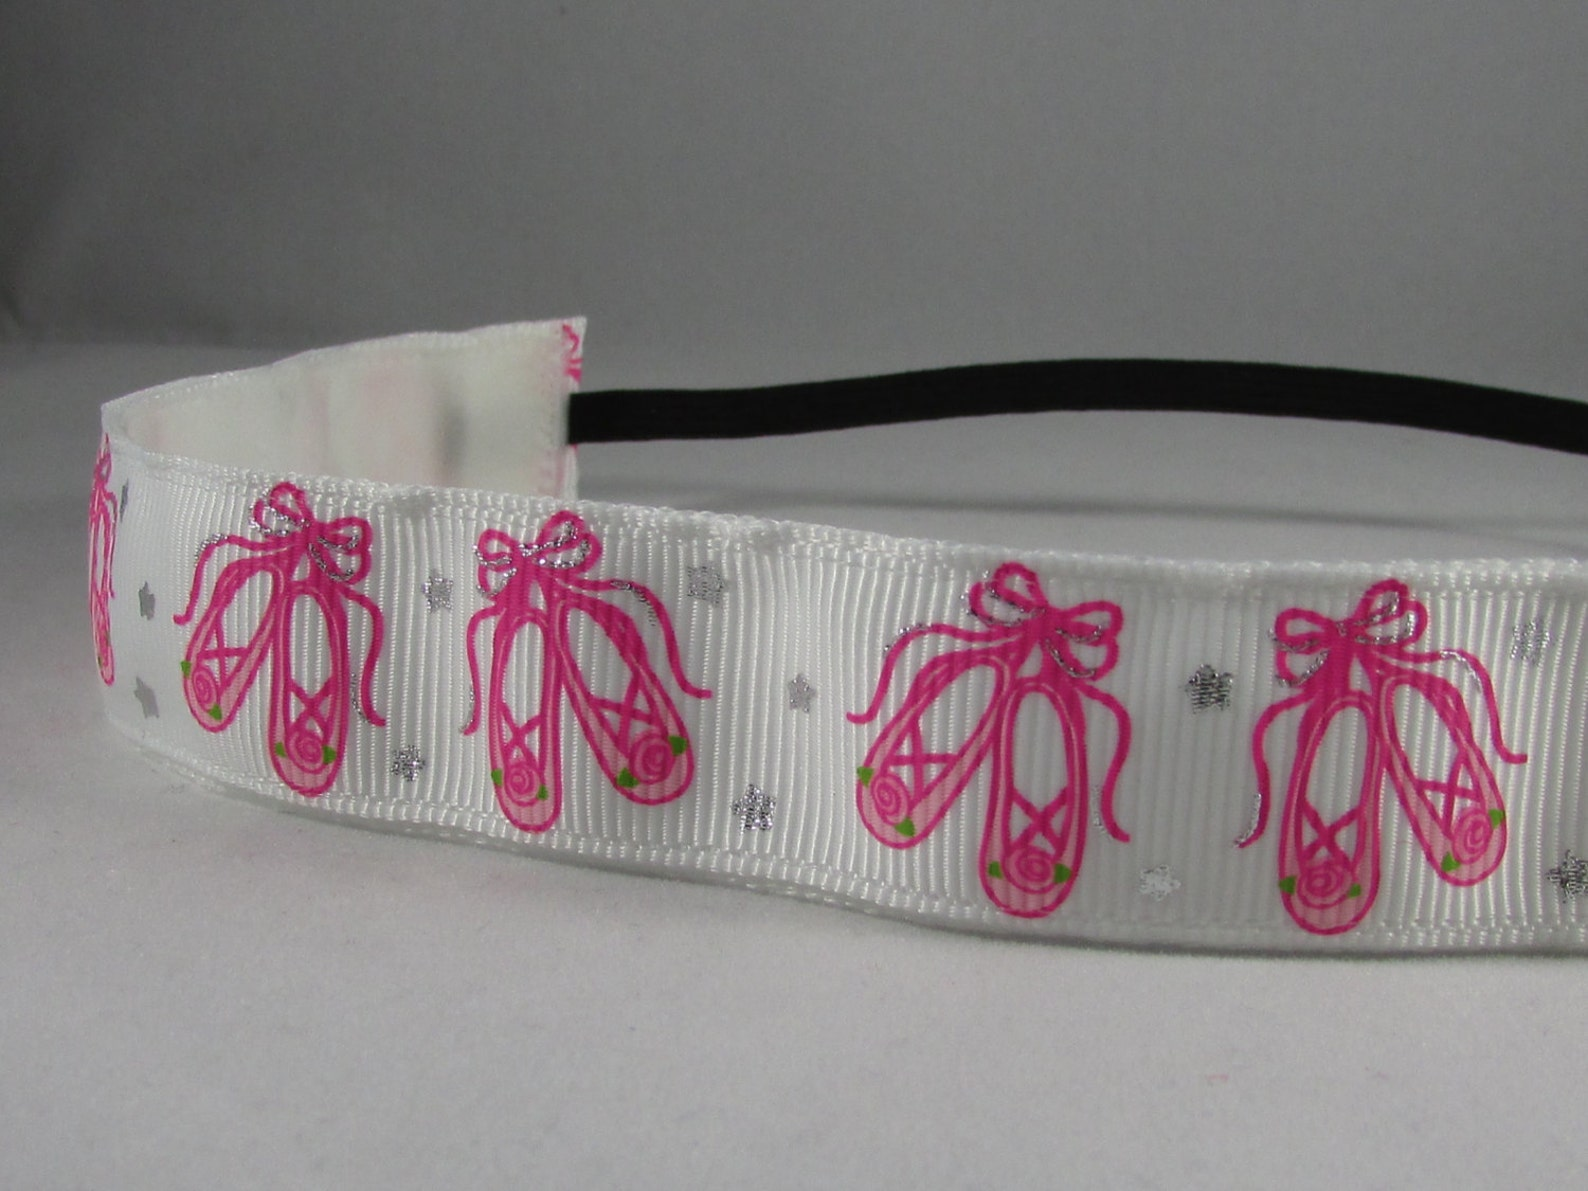 embands - non-slip white ballet shoes headband head band, pink ballet shoes, ballerina headband, ballet headband, girls headband